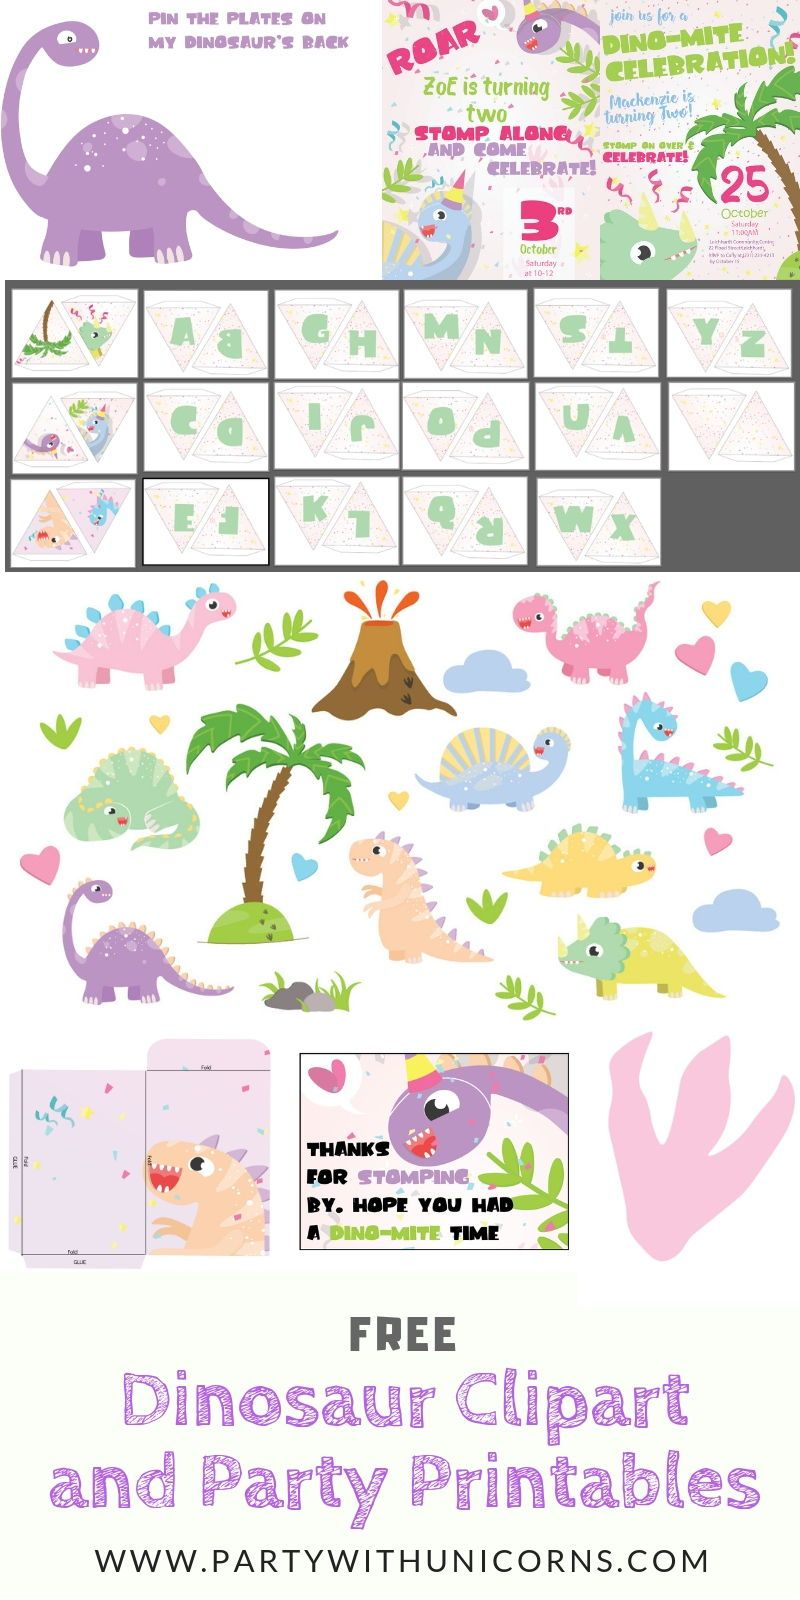 free dinosaur clipart and party printables dinosaurs dinosaurparty dino [ 800 x 1600 Pixel ]